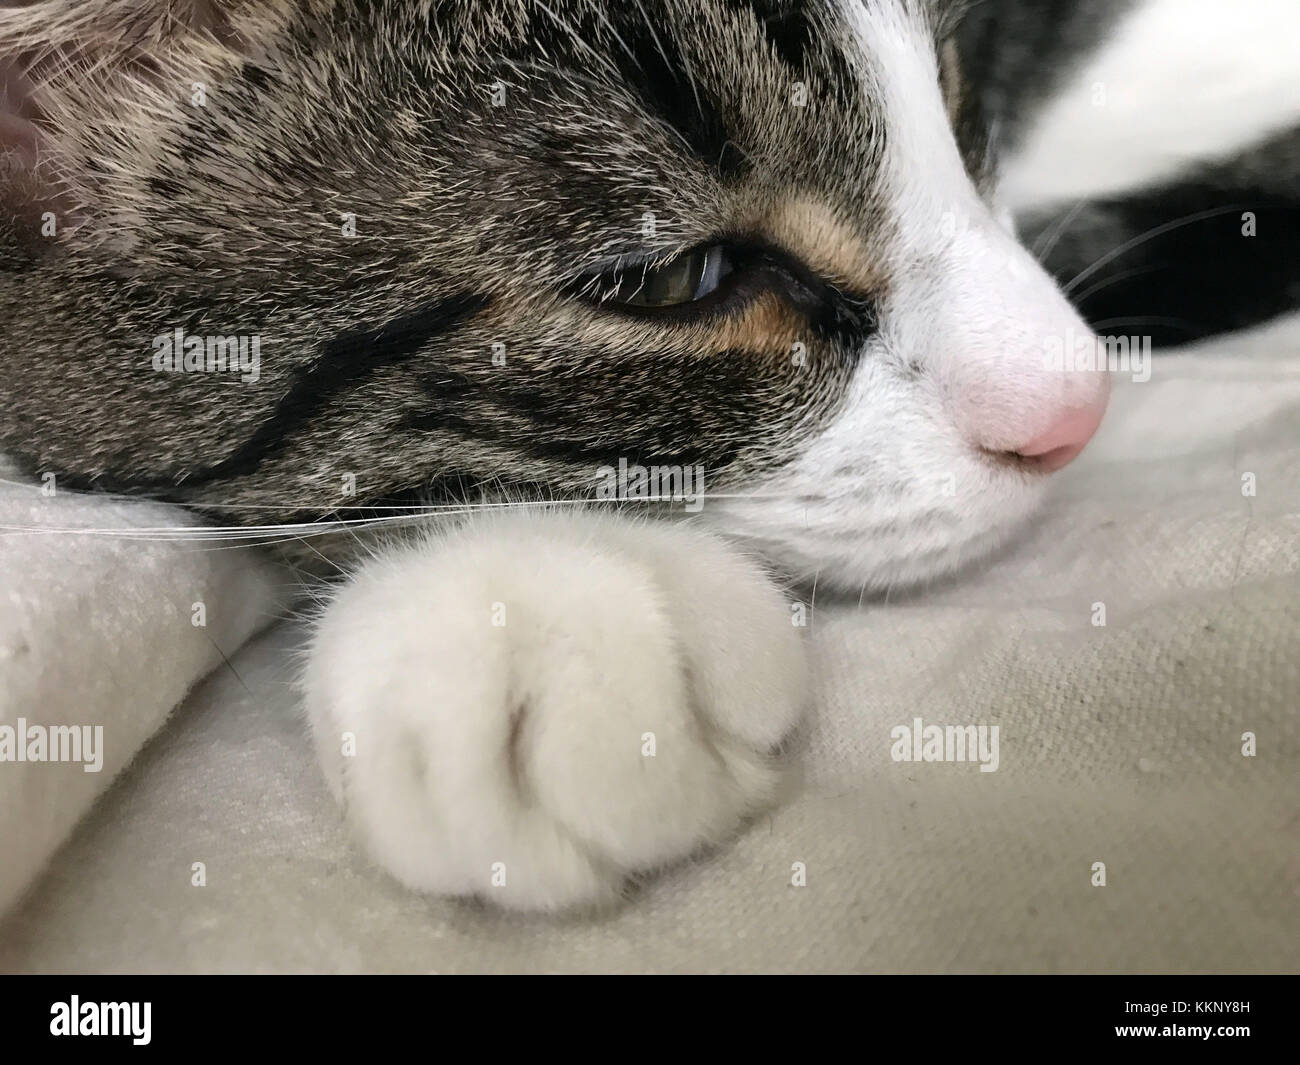 Gray and white kitten snoozing. - Stock Image